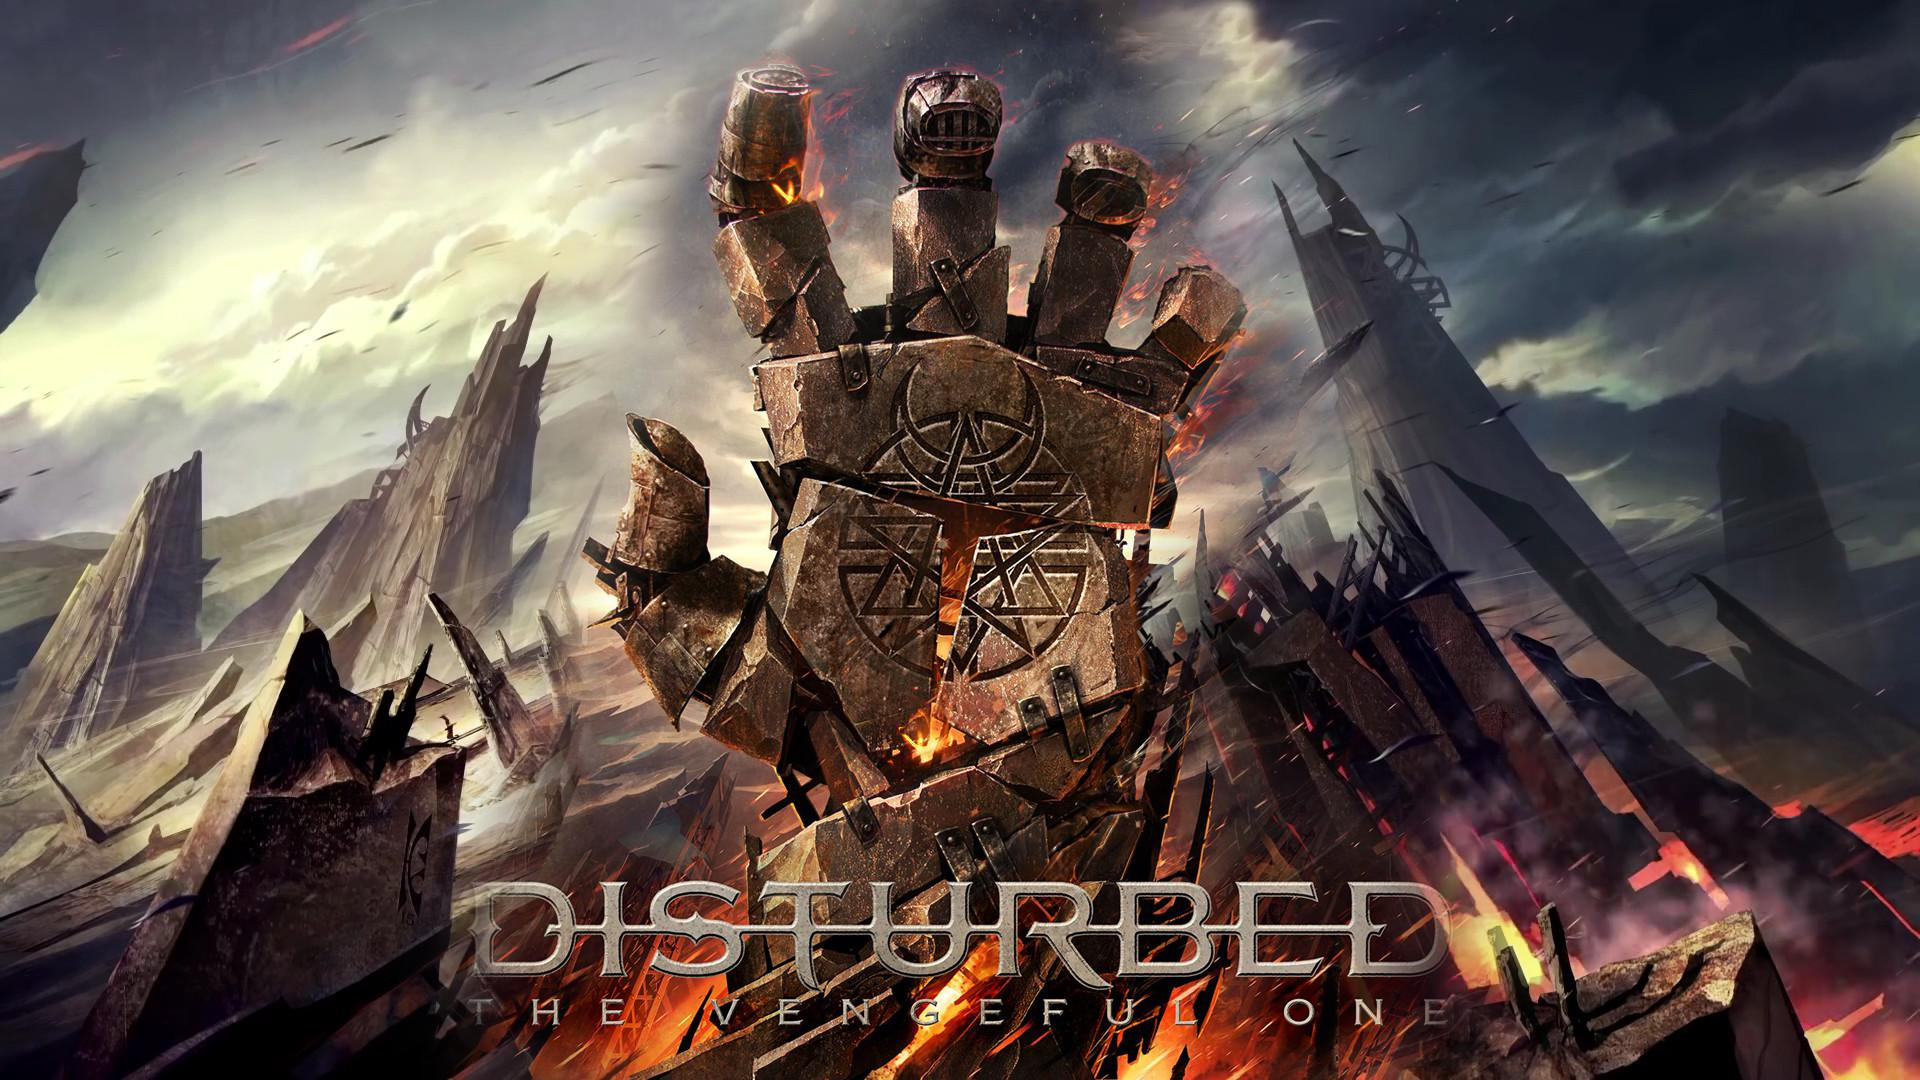 Disturbed Band Image Festival